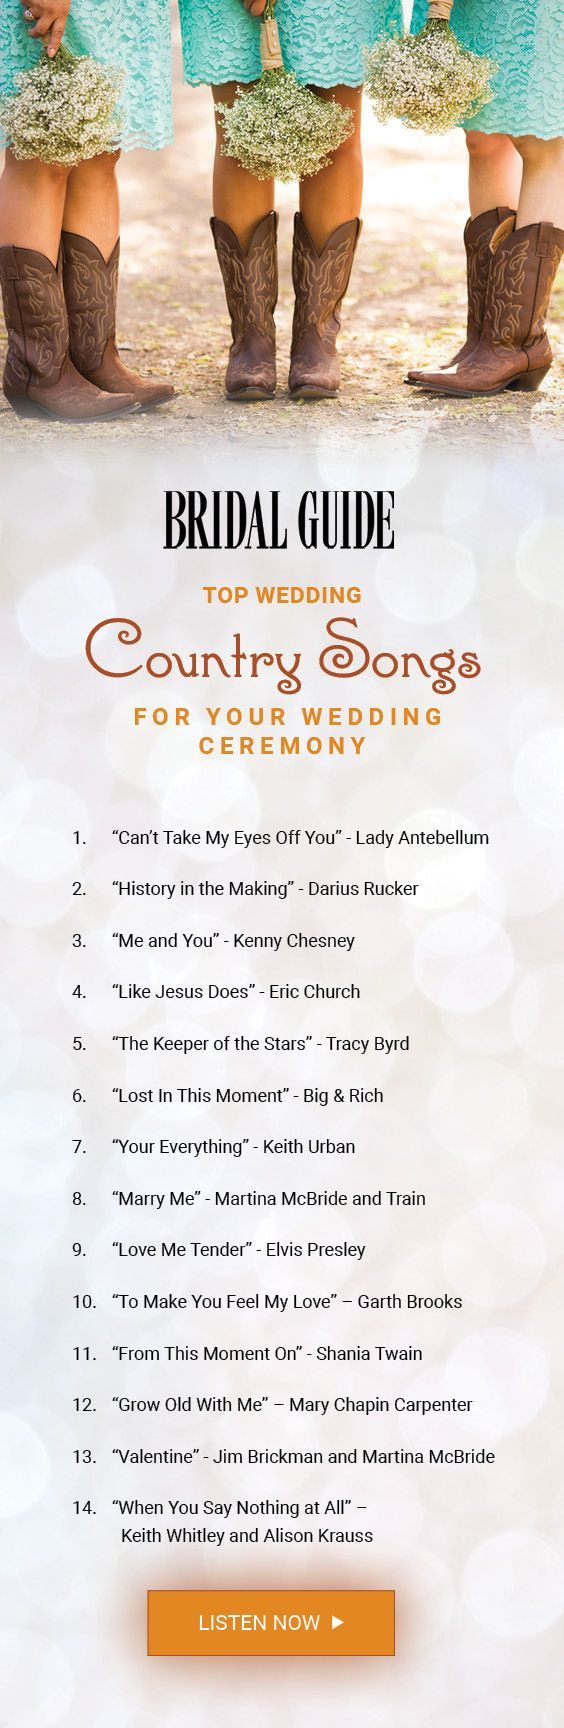 Top country songs to play during your wedding ceremony!